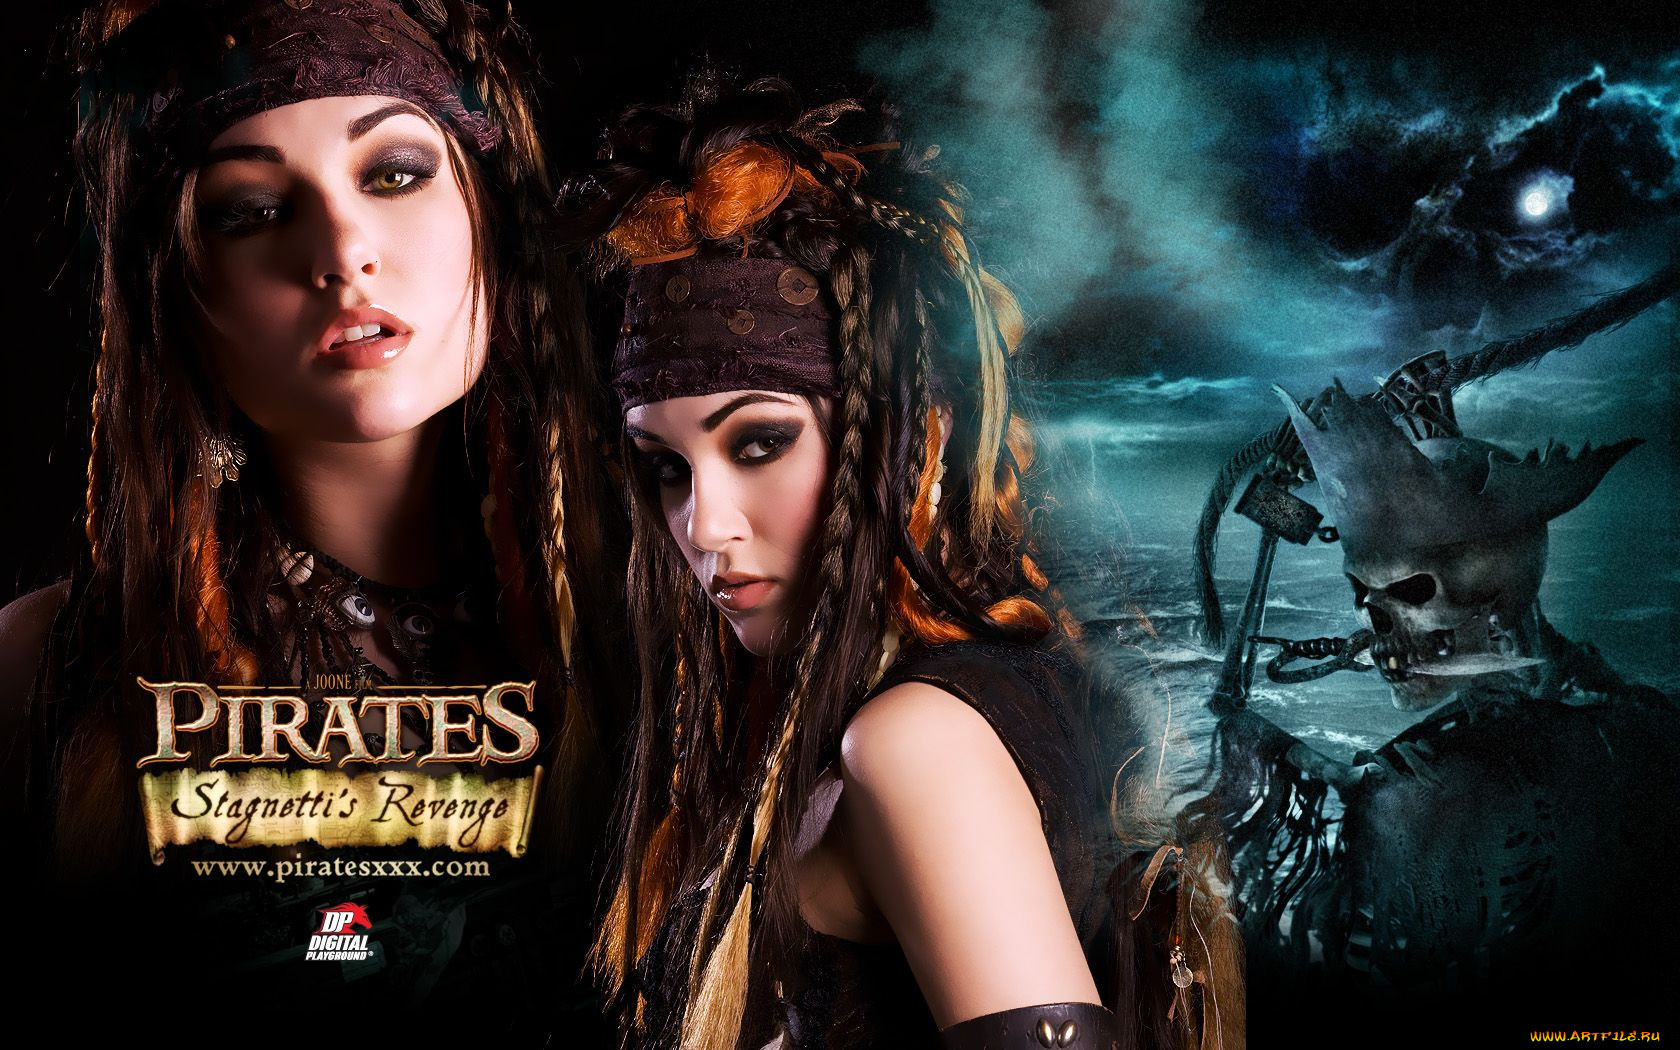 Girls pirates 3gp movies erotica video